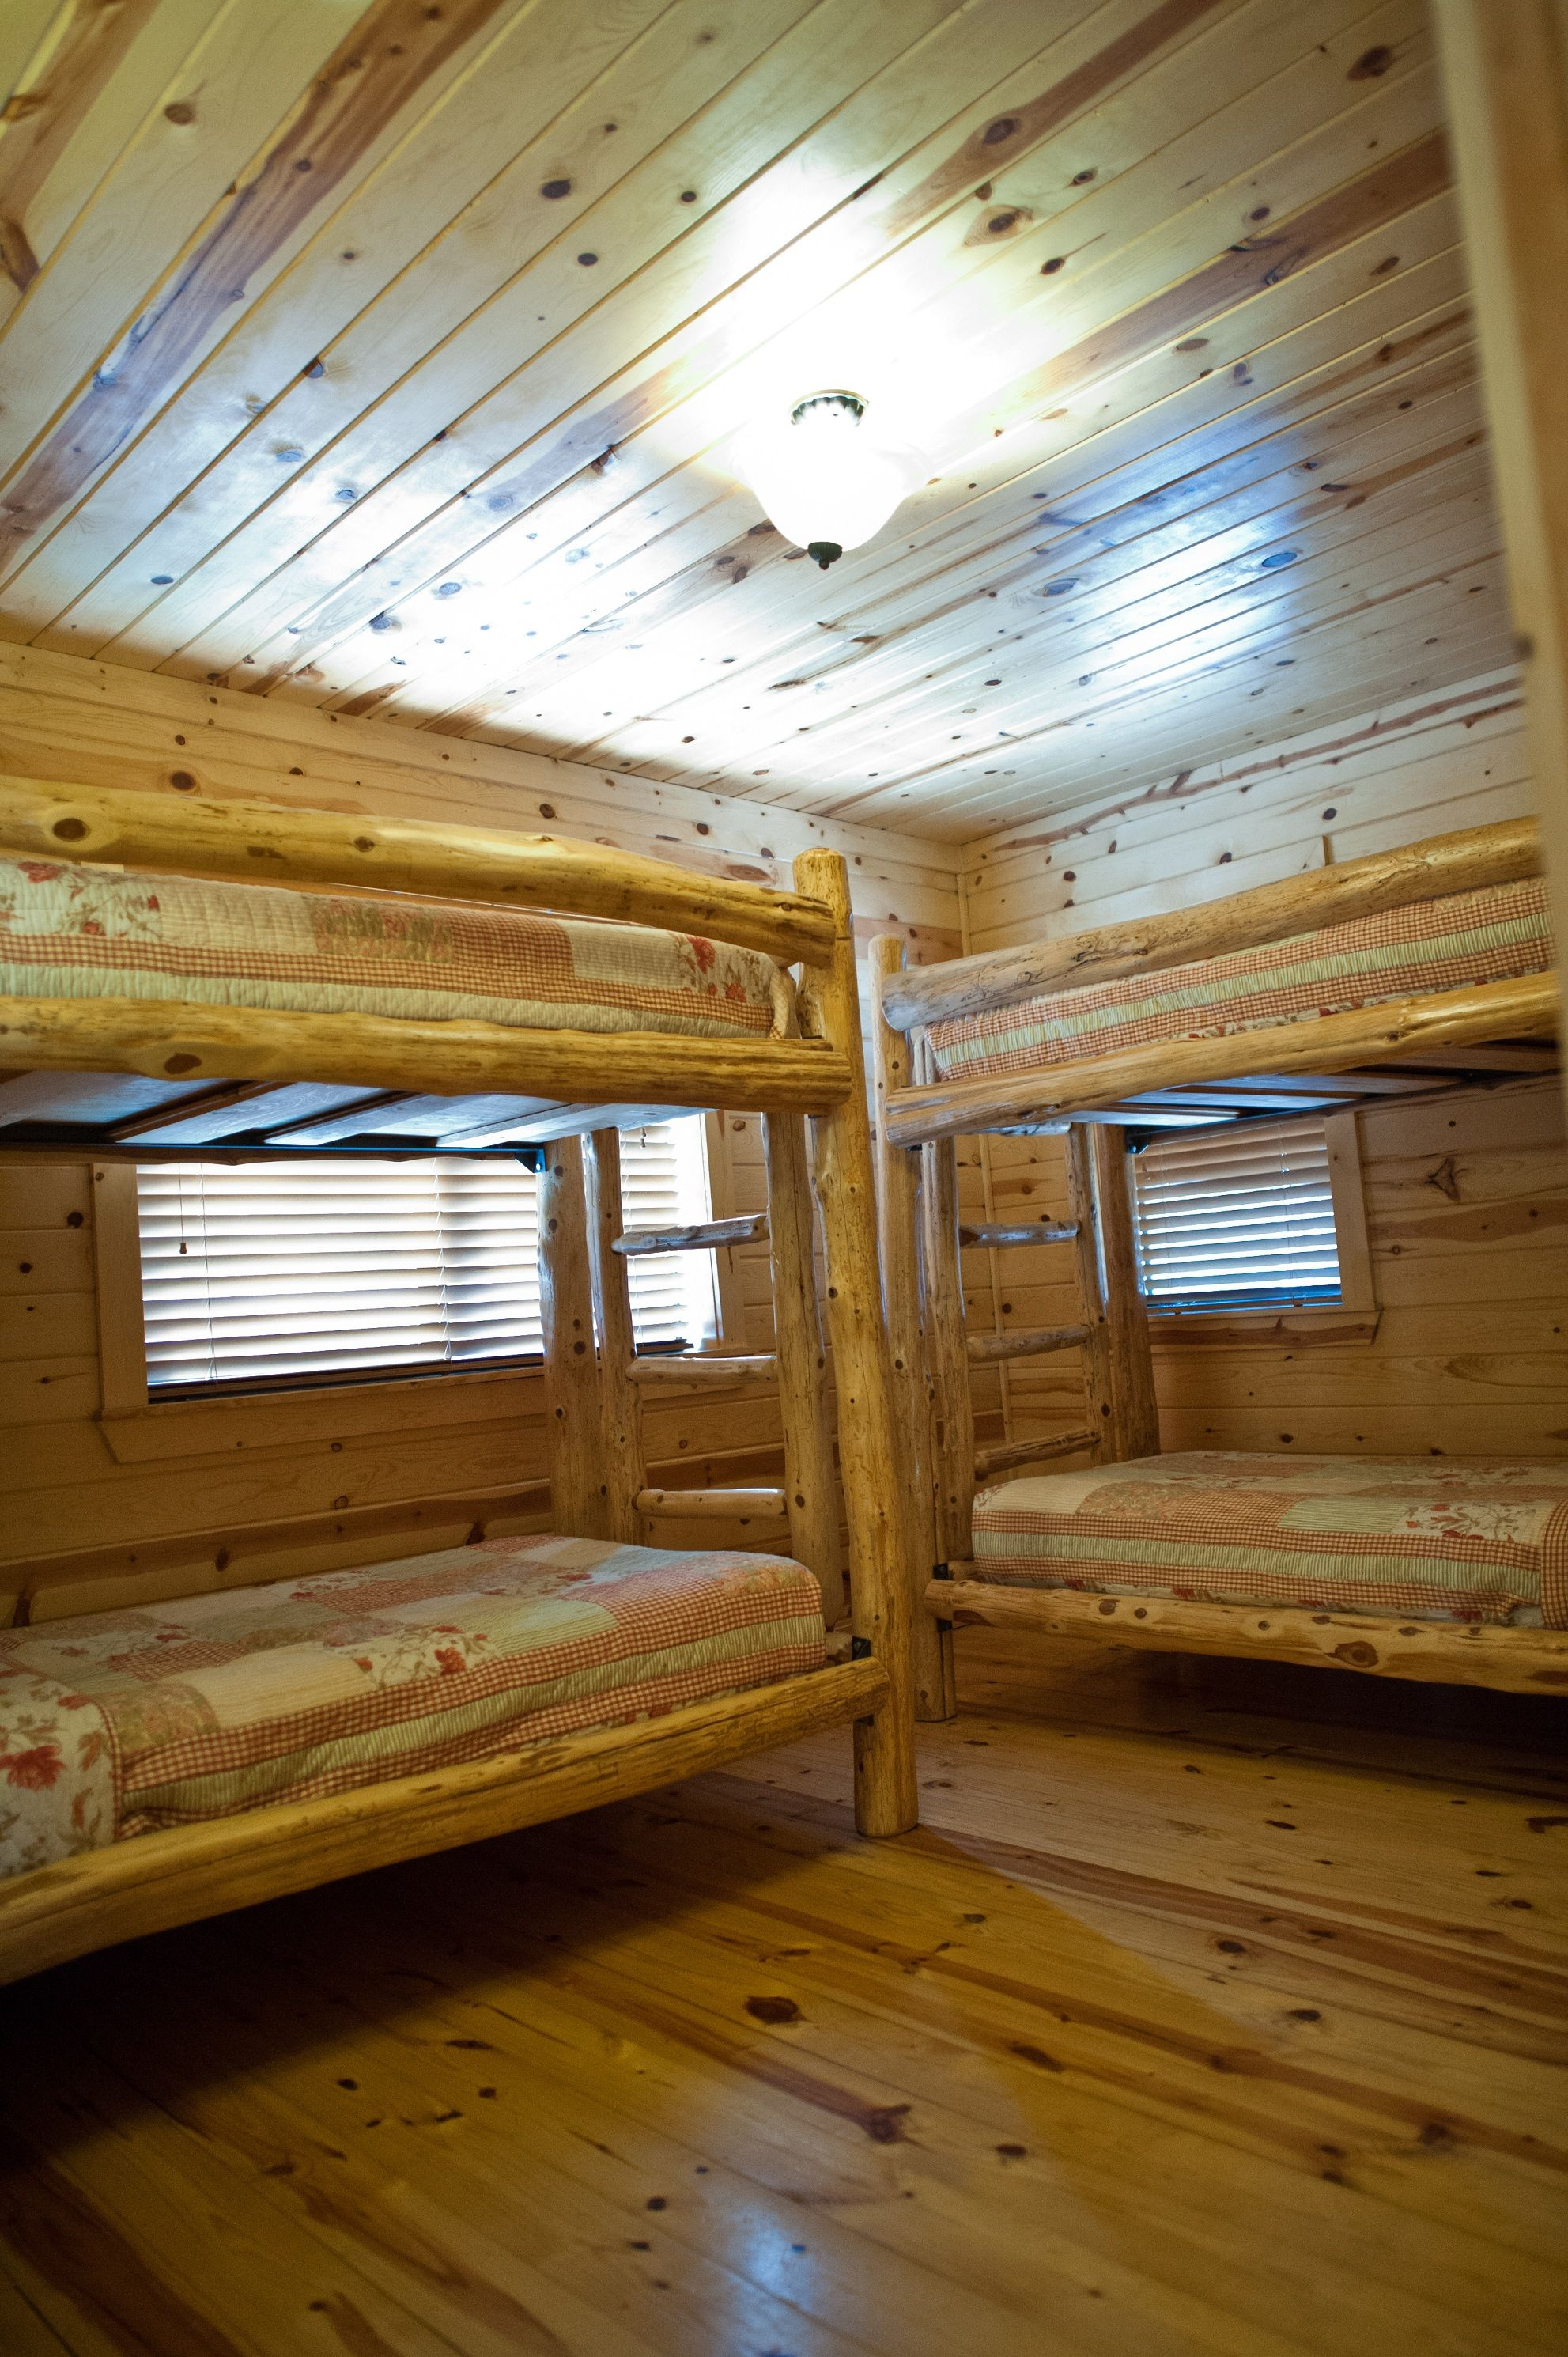 The Bunk Beds Inside The Wildwood Cabin At Beavers Bend State Park